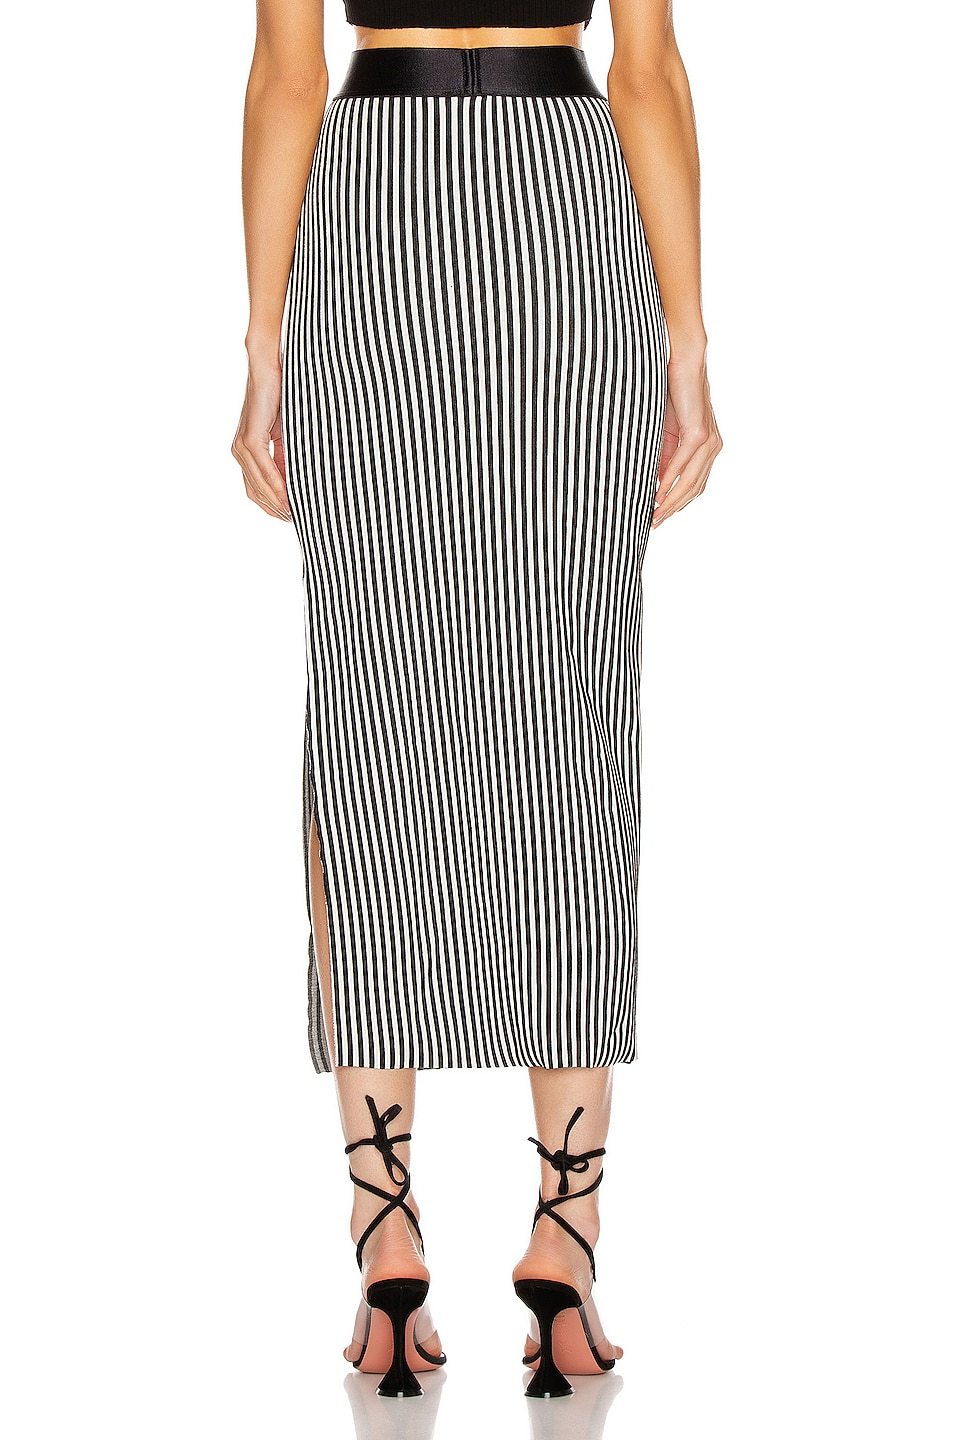 Image 3 of The Range Bound Striped Banded Skirt in White & Black